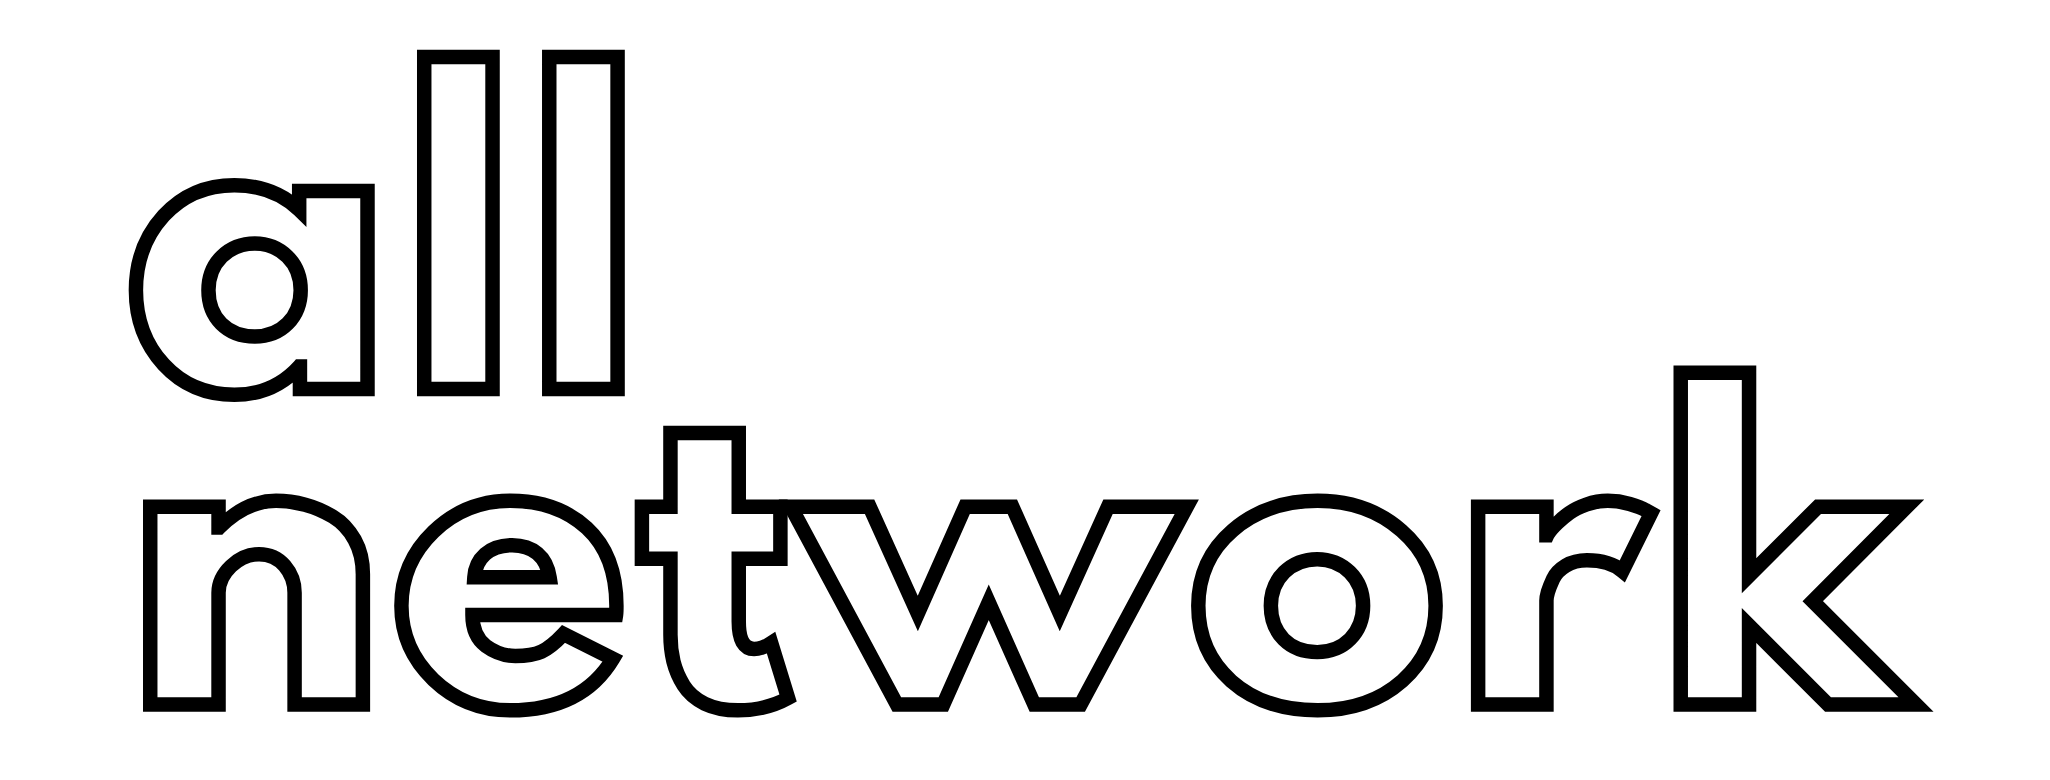 All Network